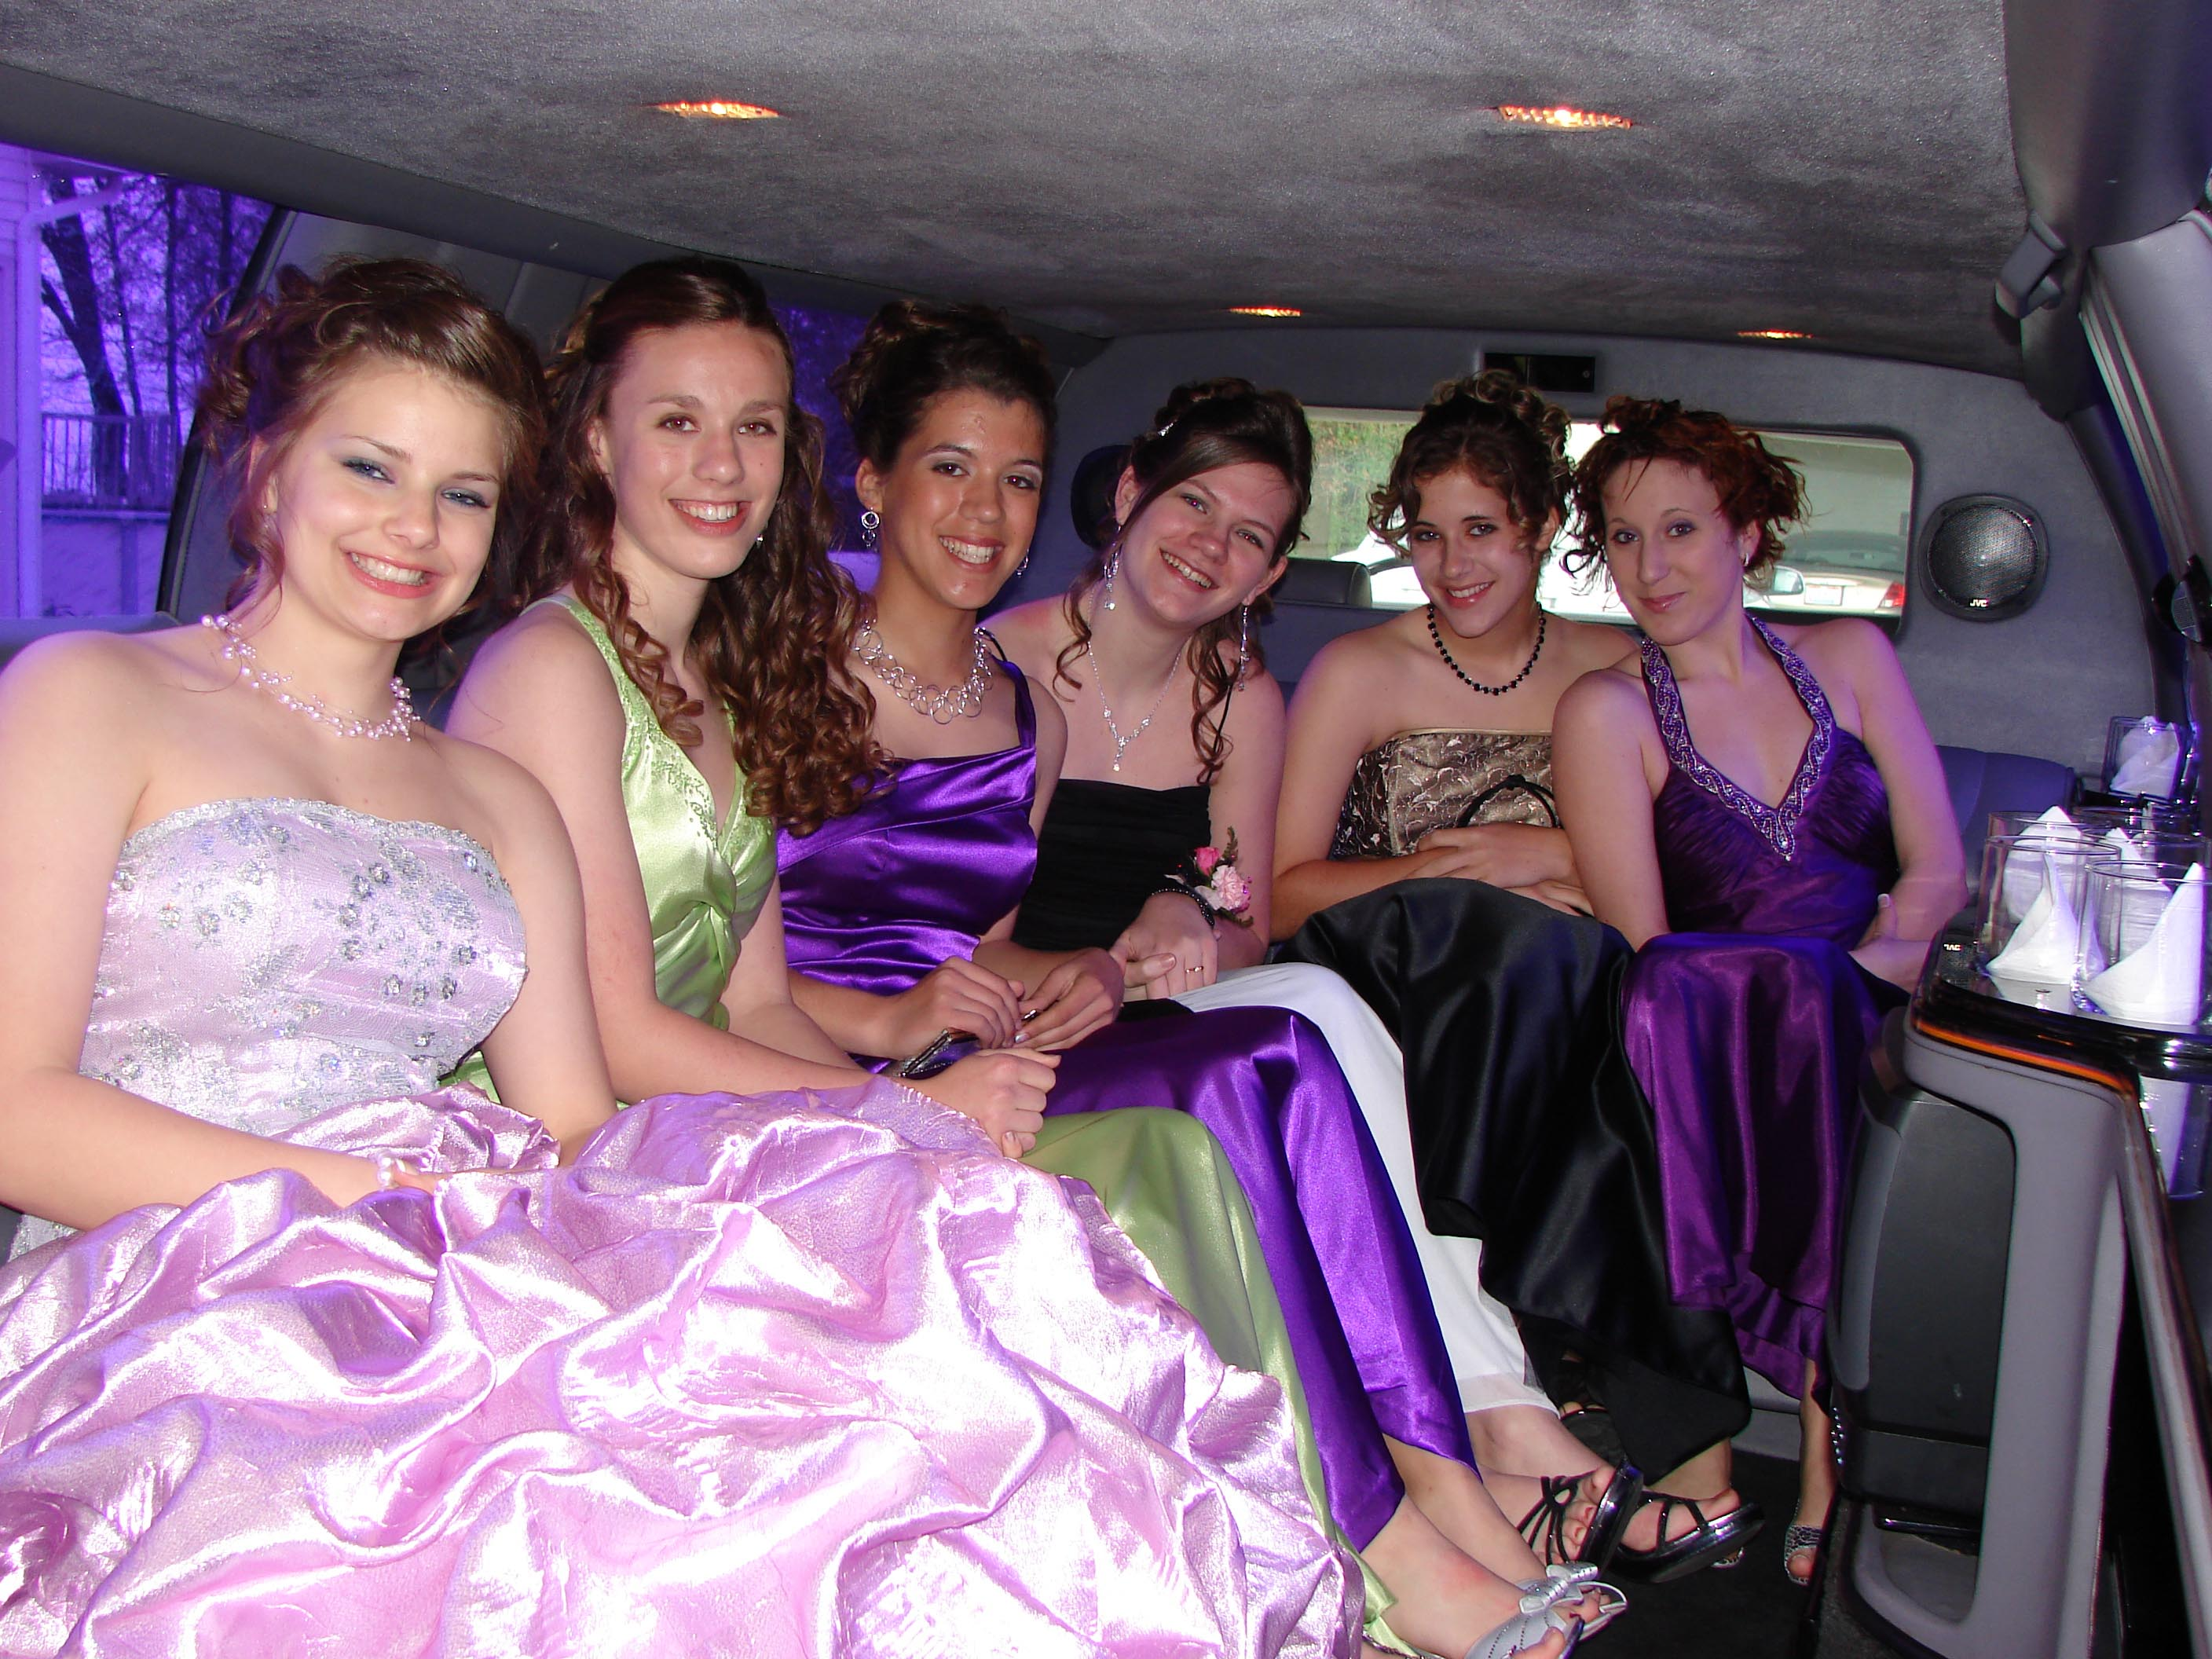 https://losangelespromlimousine.files.wordpress.com/2015/03/prom-limo-rental-los-angeles.jpg